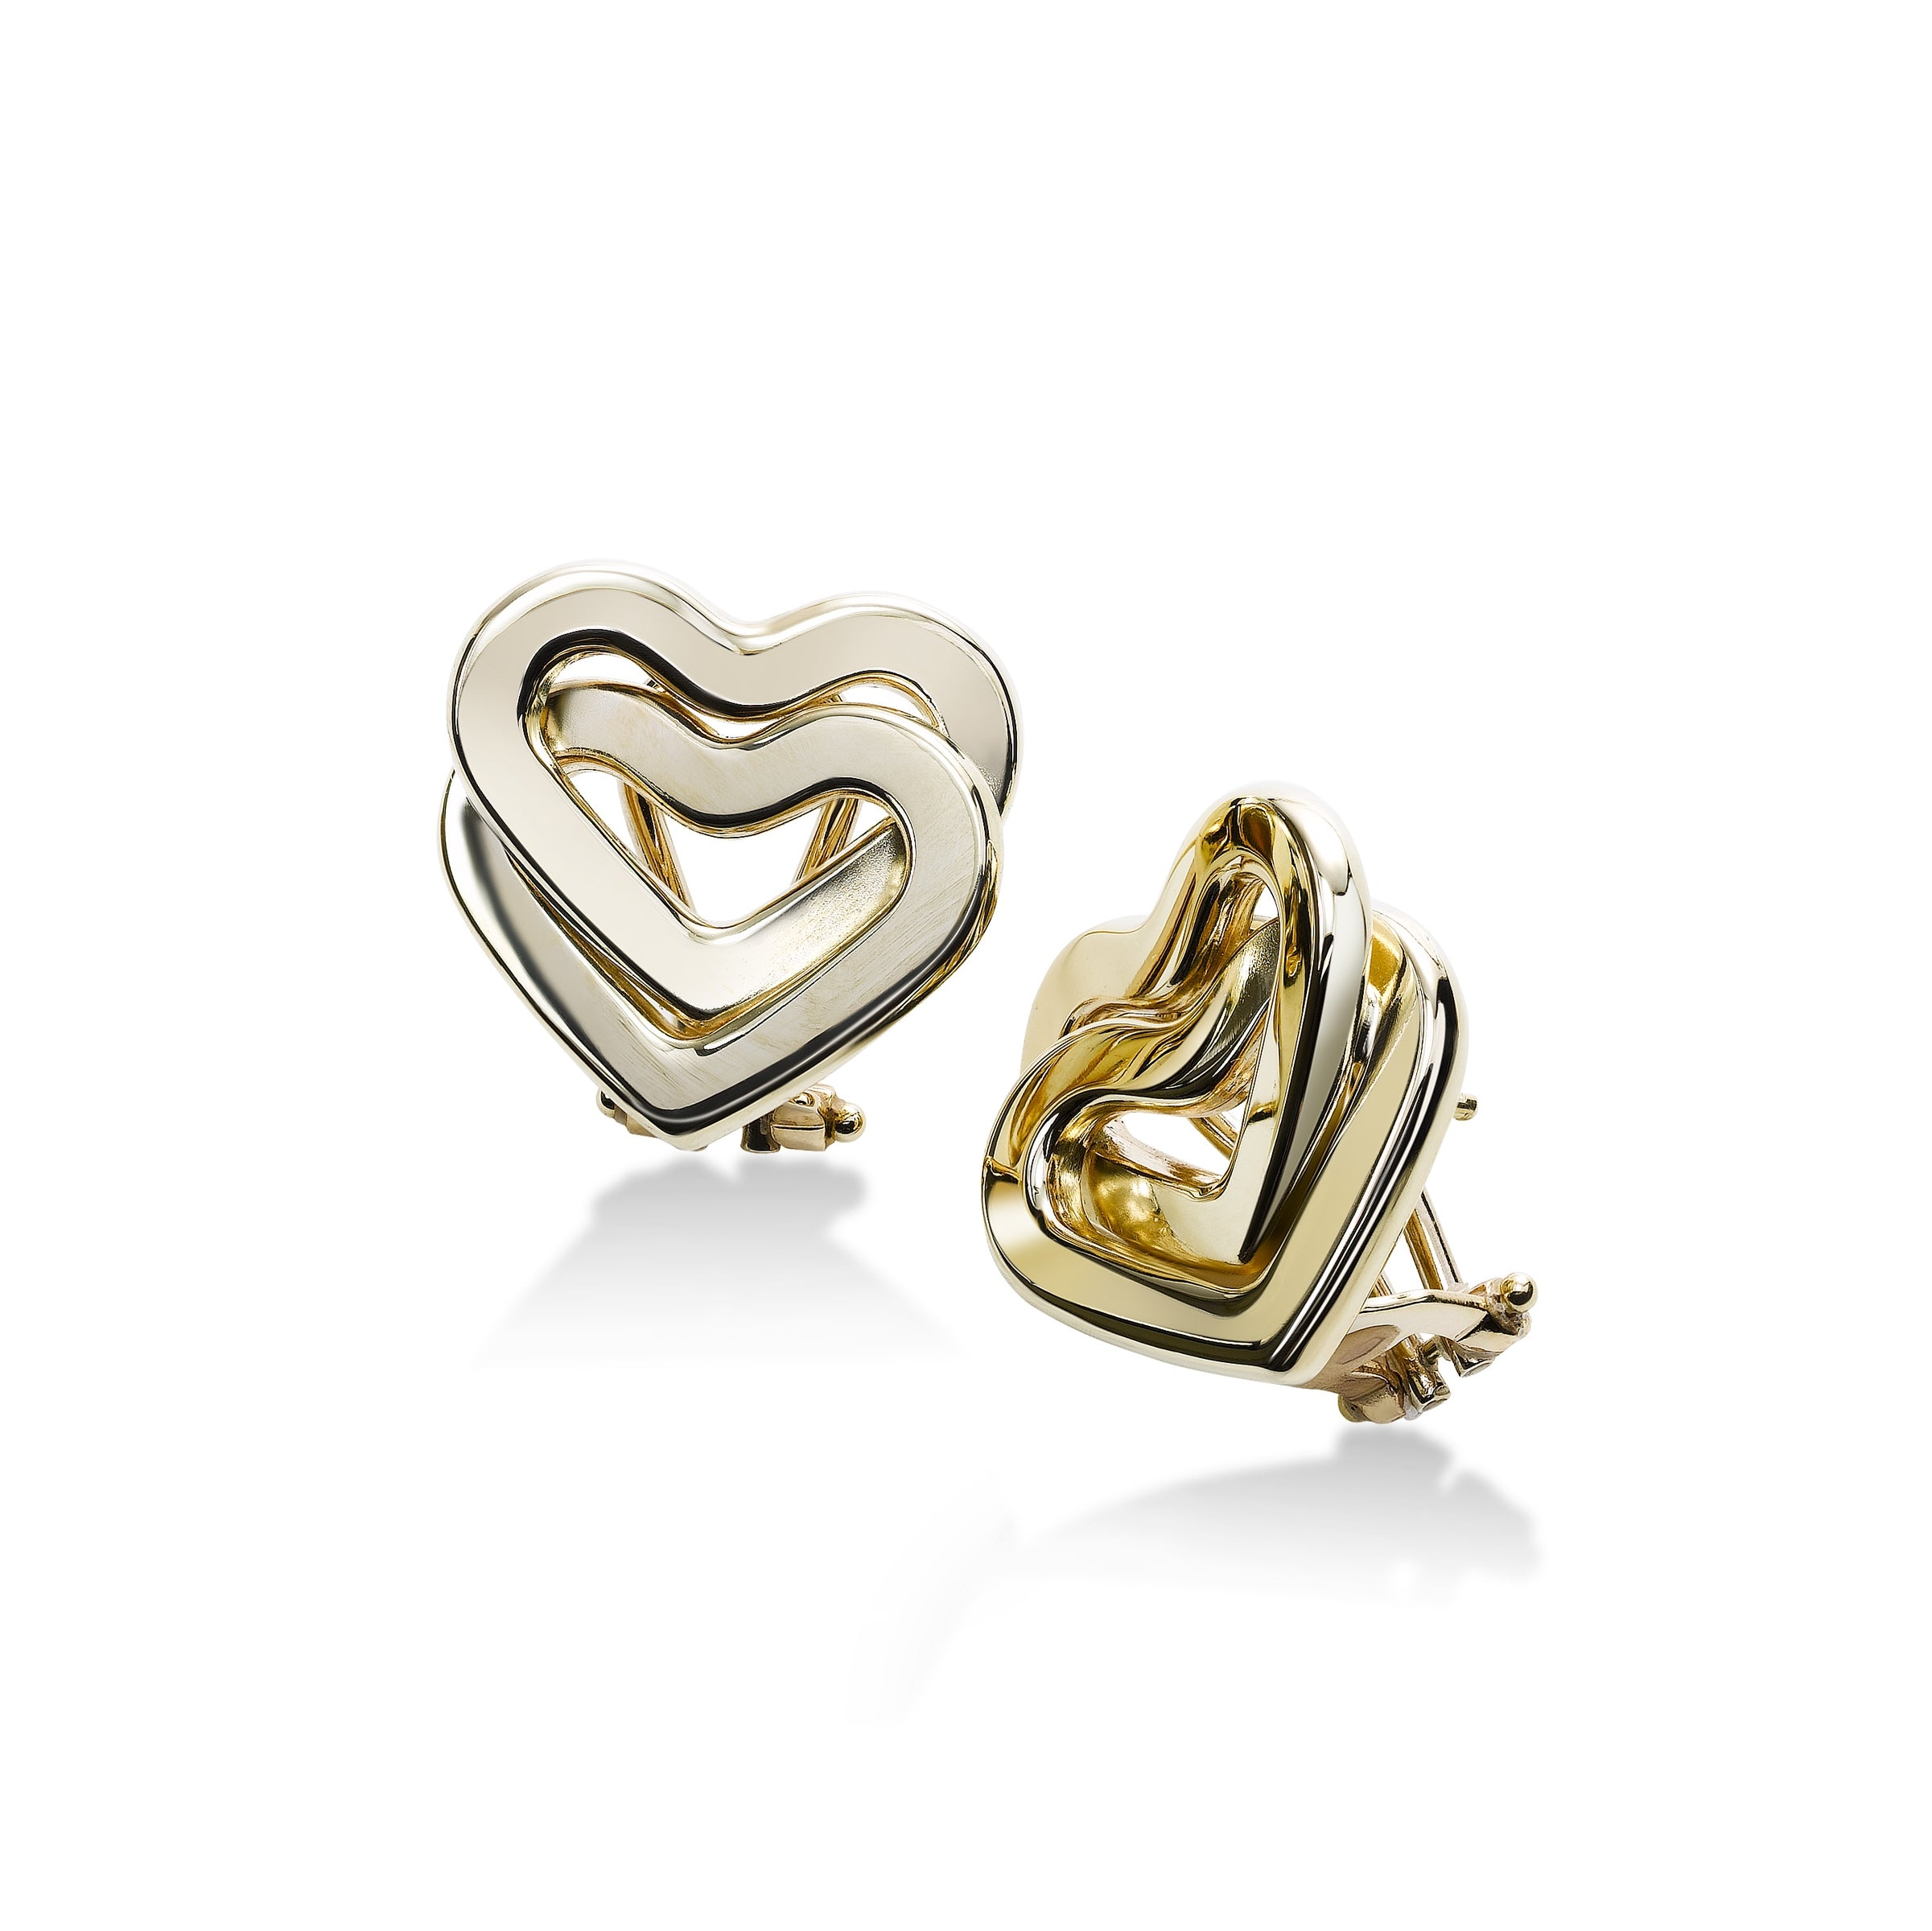 Interlocking Hearts Earrings, 14K Yellow Gold